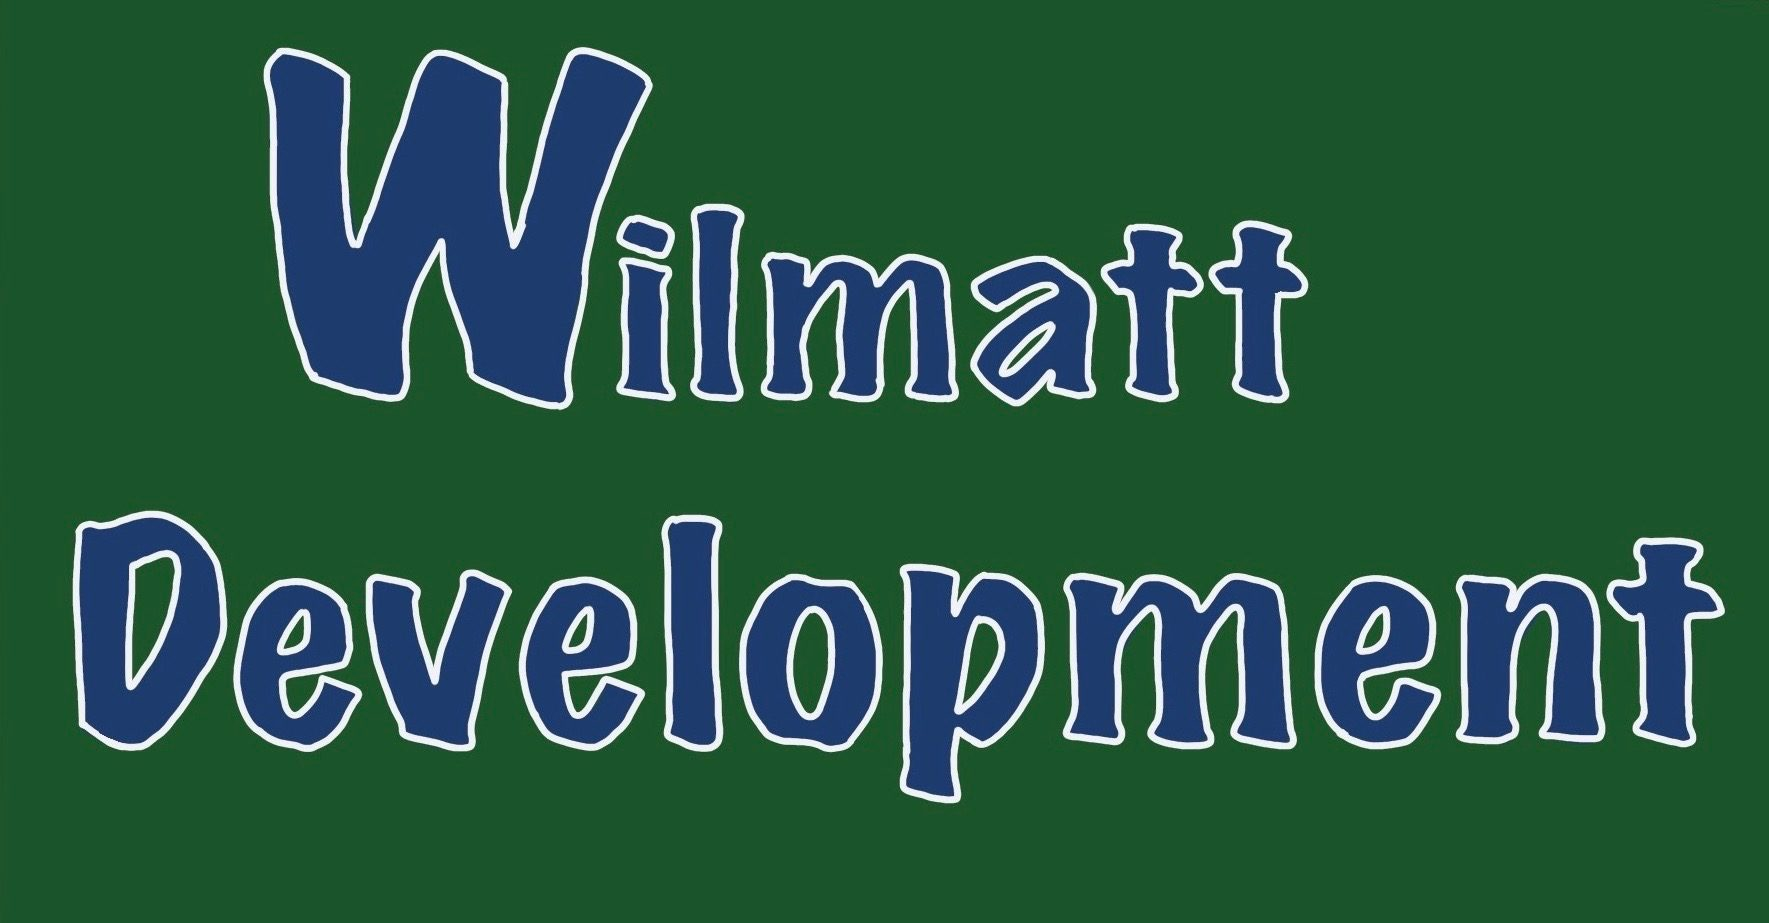 Wilmatt Development LLC